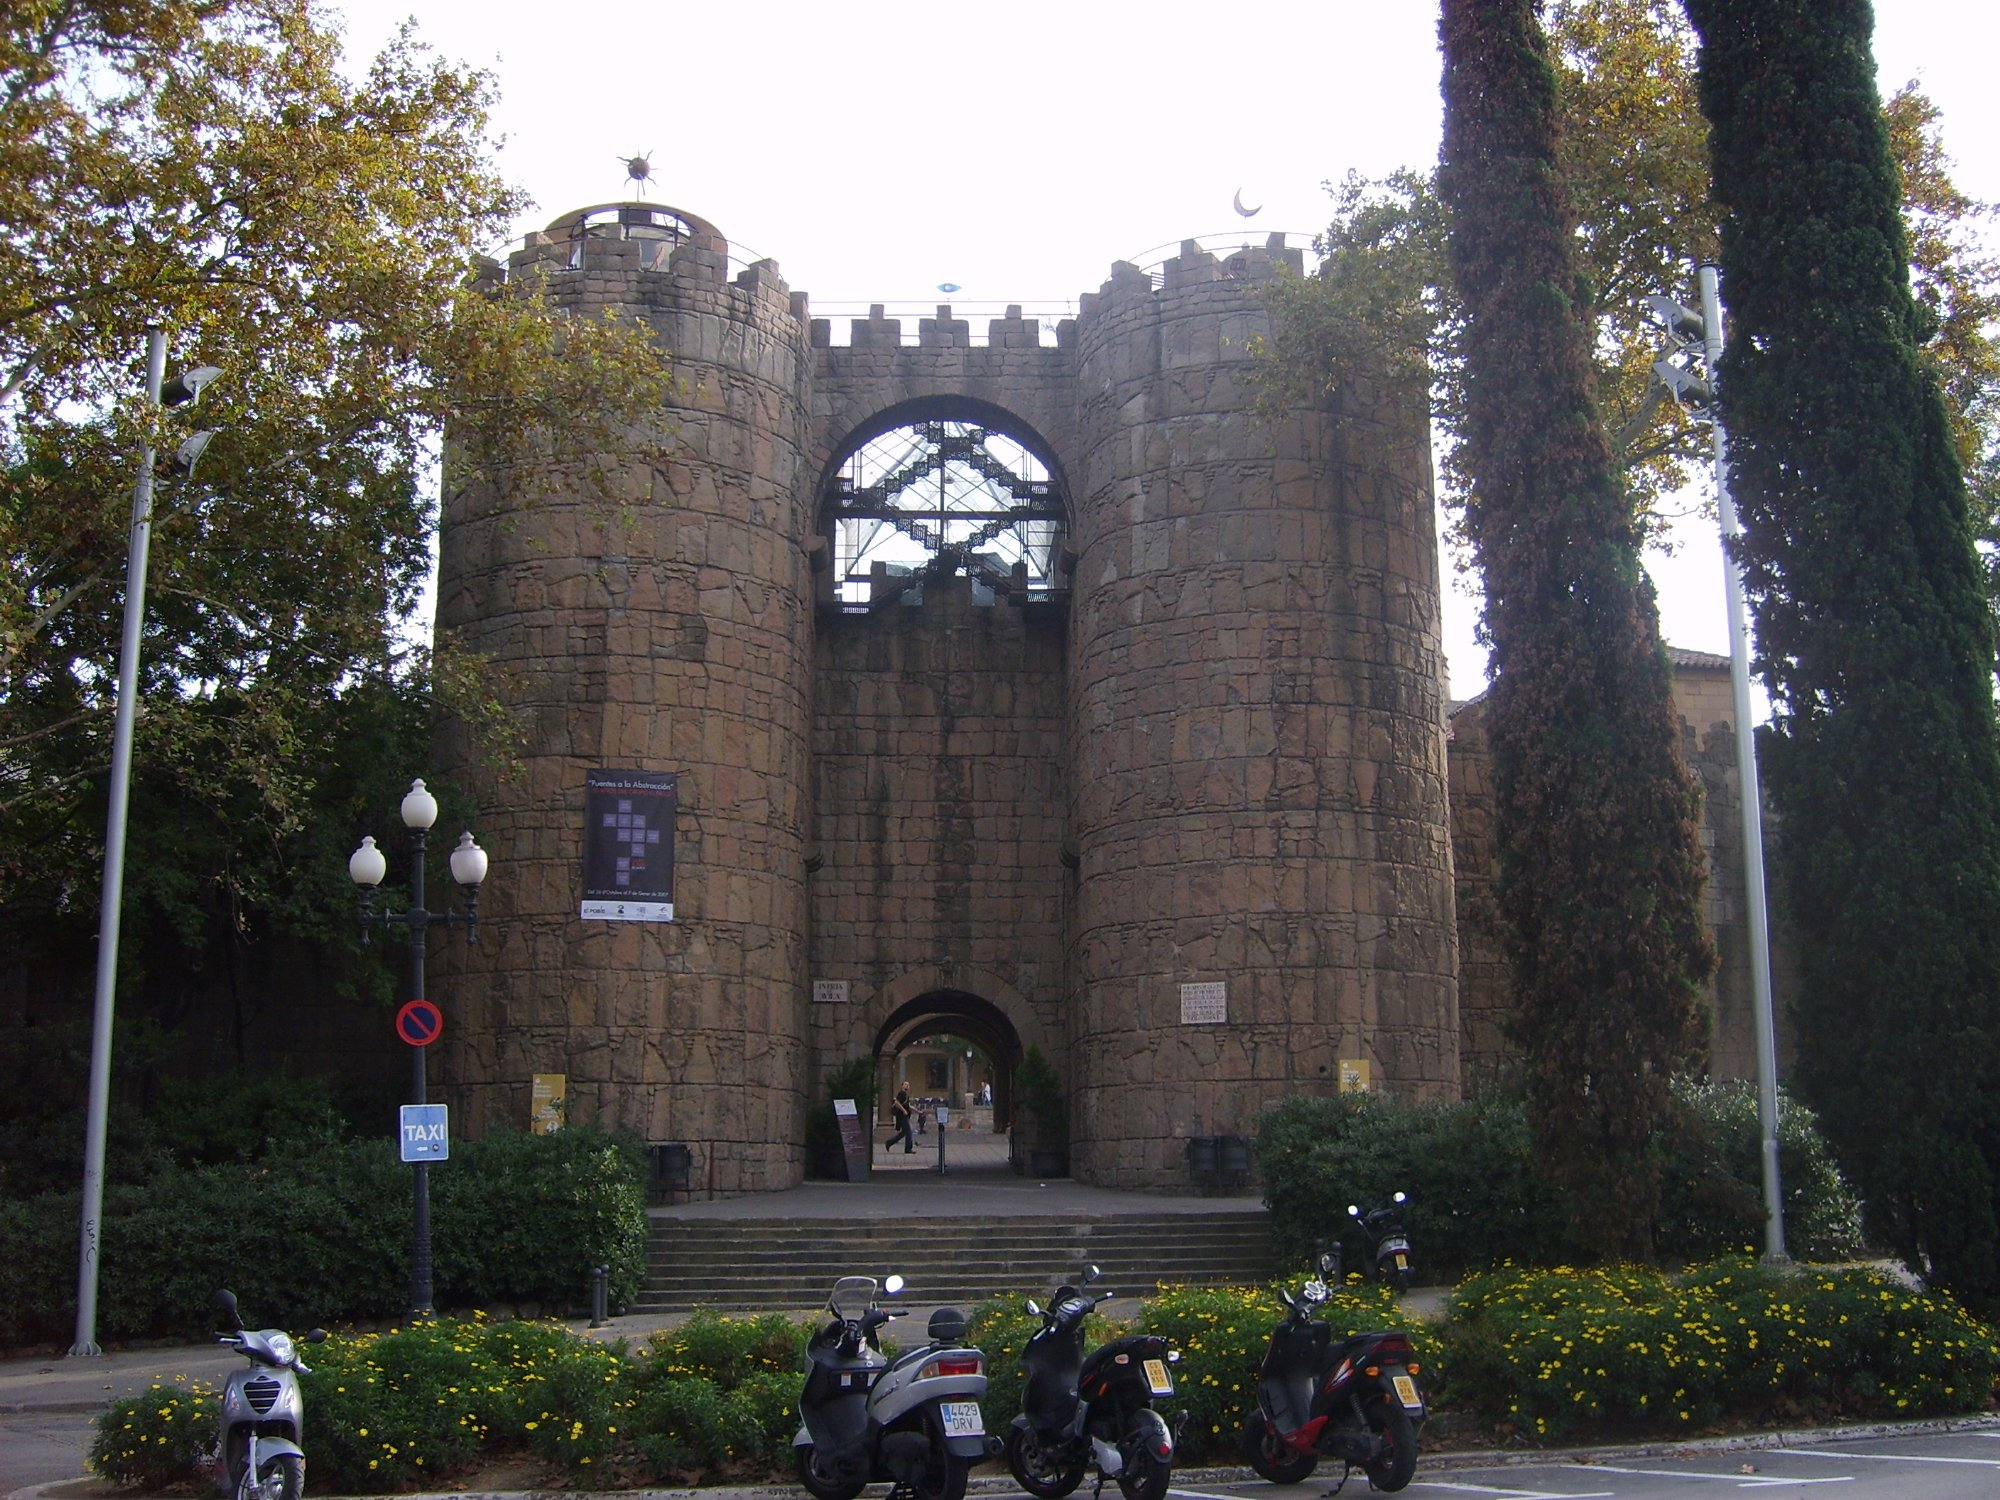 Entrance to Poble Espanyol in Barcelona